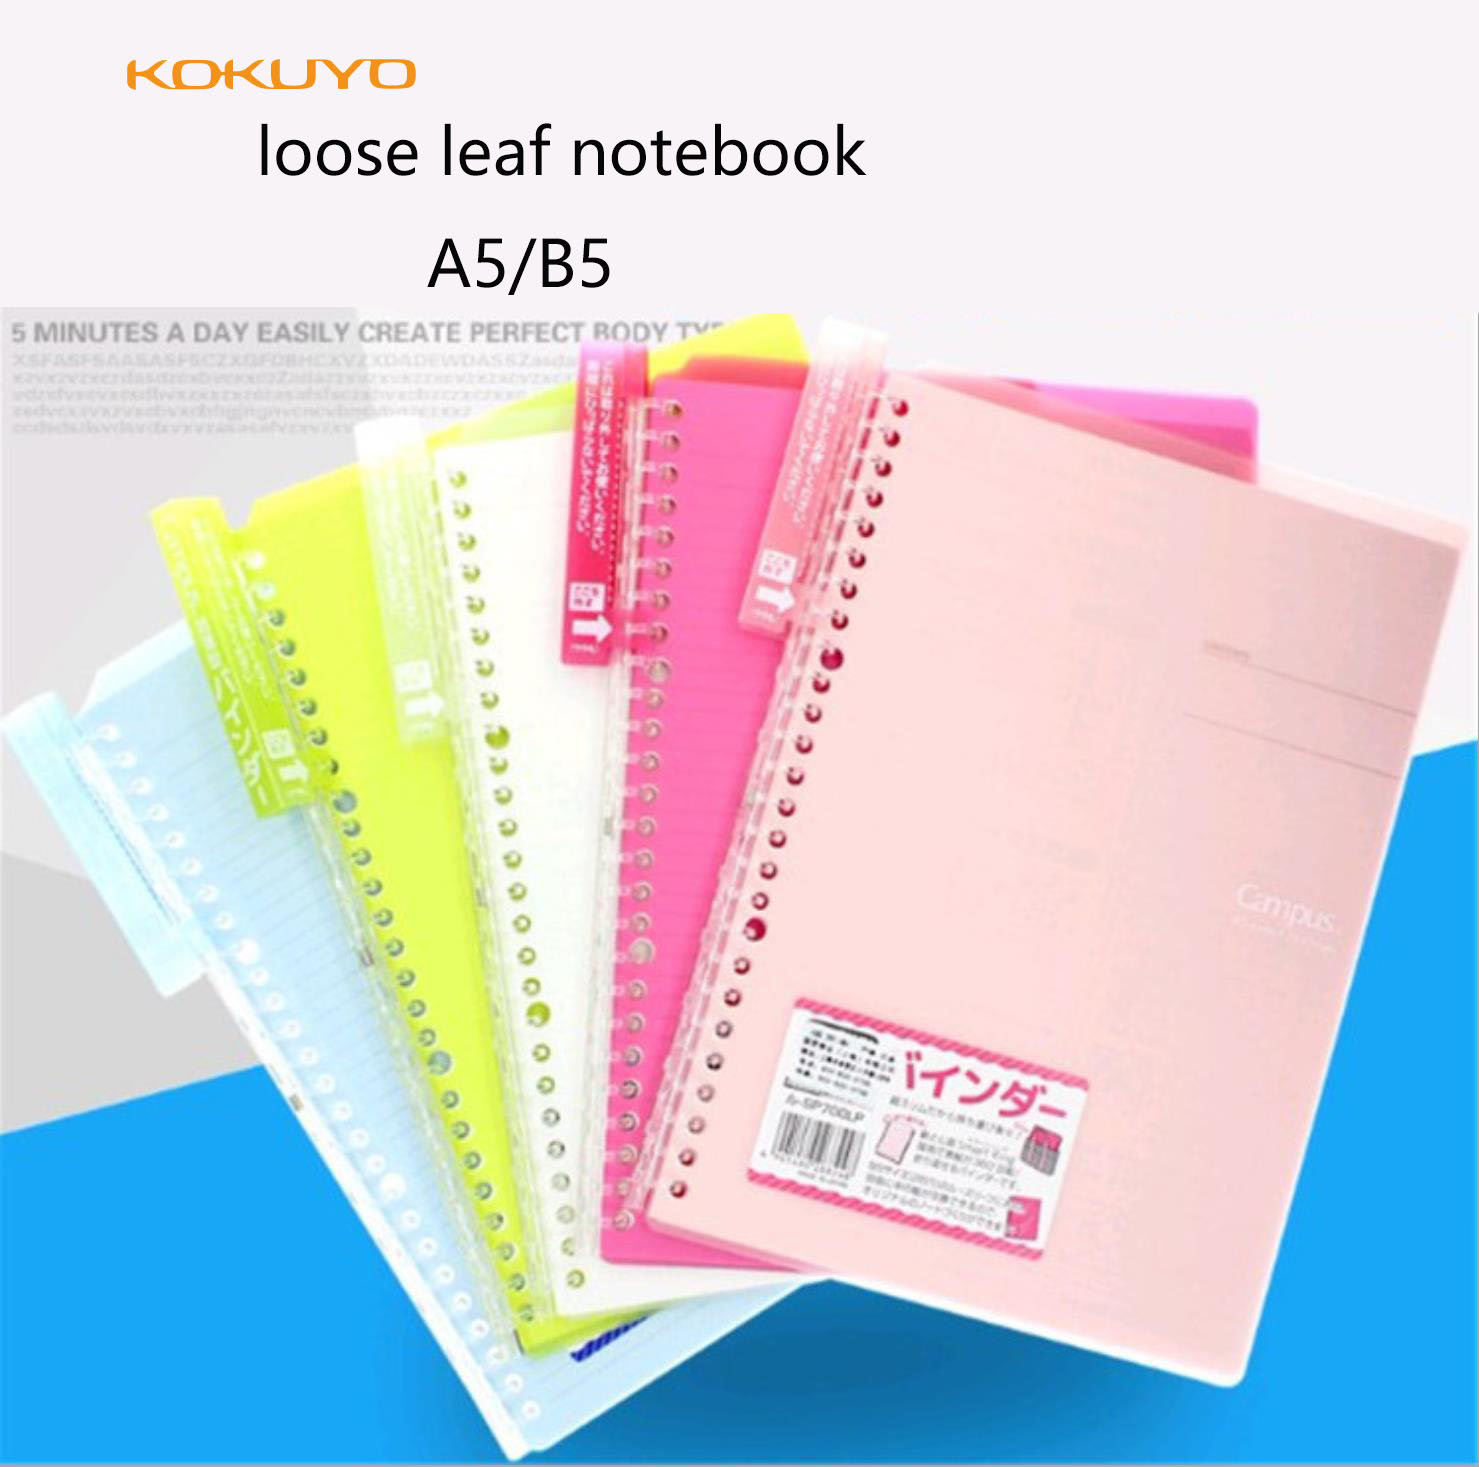 TUNACOCO A5/B5 JAPAN KOKUYO 10sheet PVC Book Cover Daily Planner Schedule Loose Leaf Inner Notebook for Bullet Journal bz1710112TUNACOCO A5/B5 JAPAN KOKUYO 10sheet PVC Book Cover Daily Planner Schedule Loose Leaf Inner Notebook for Bullet Journal bz1710112